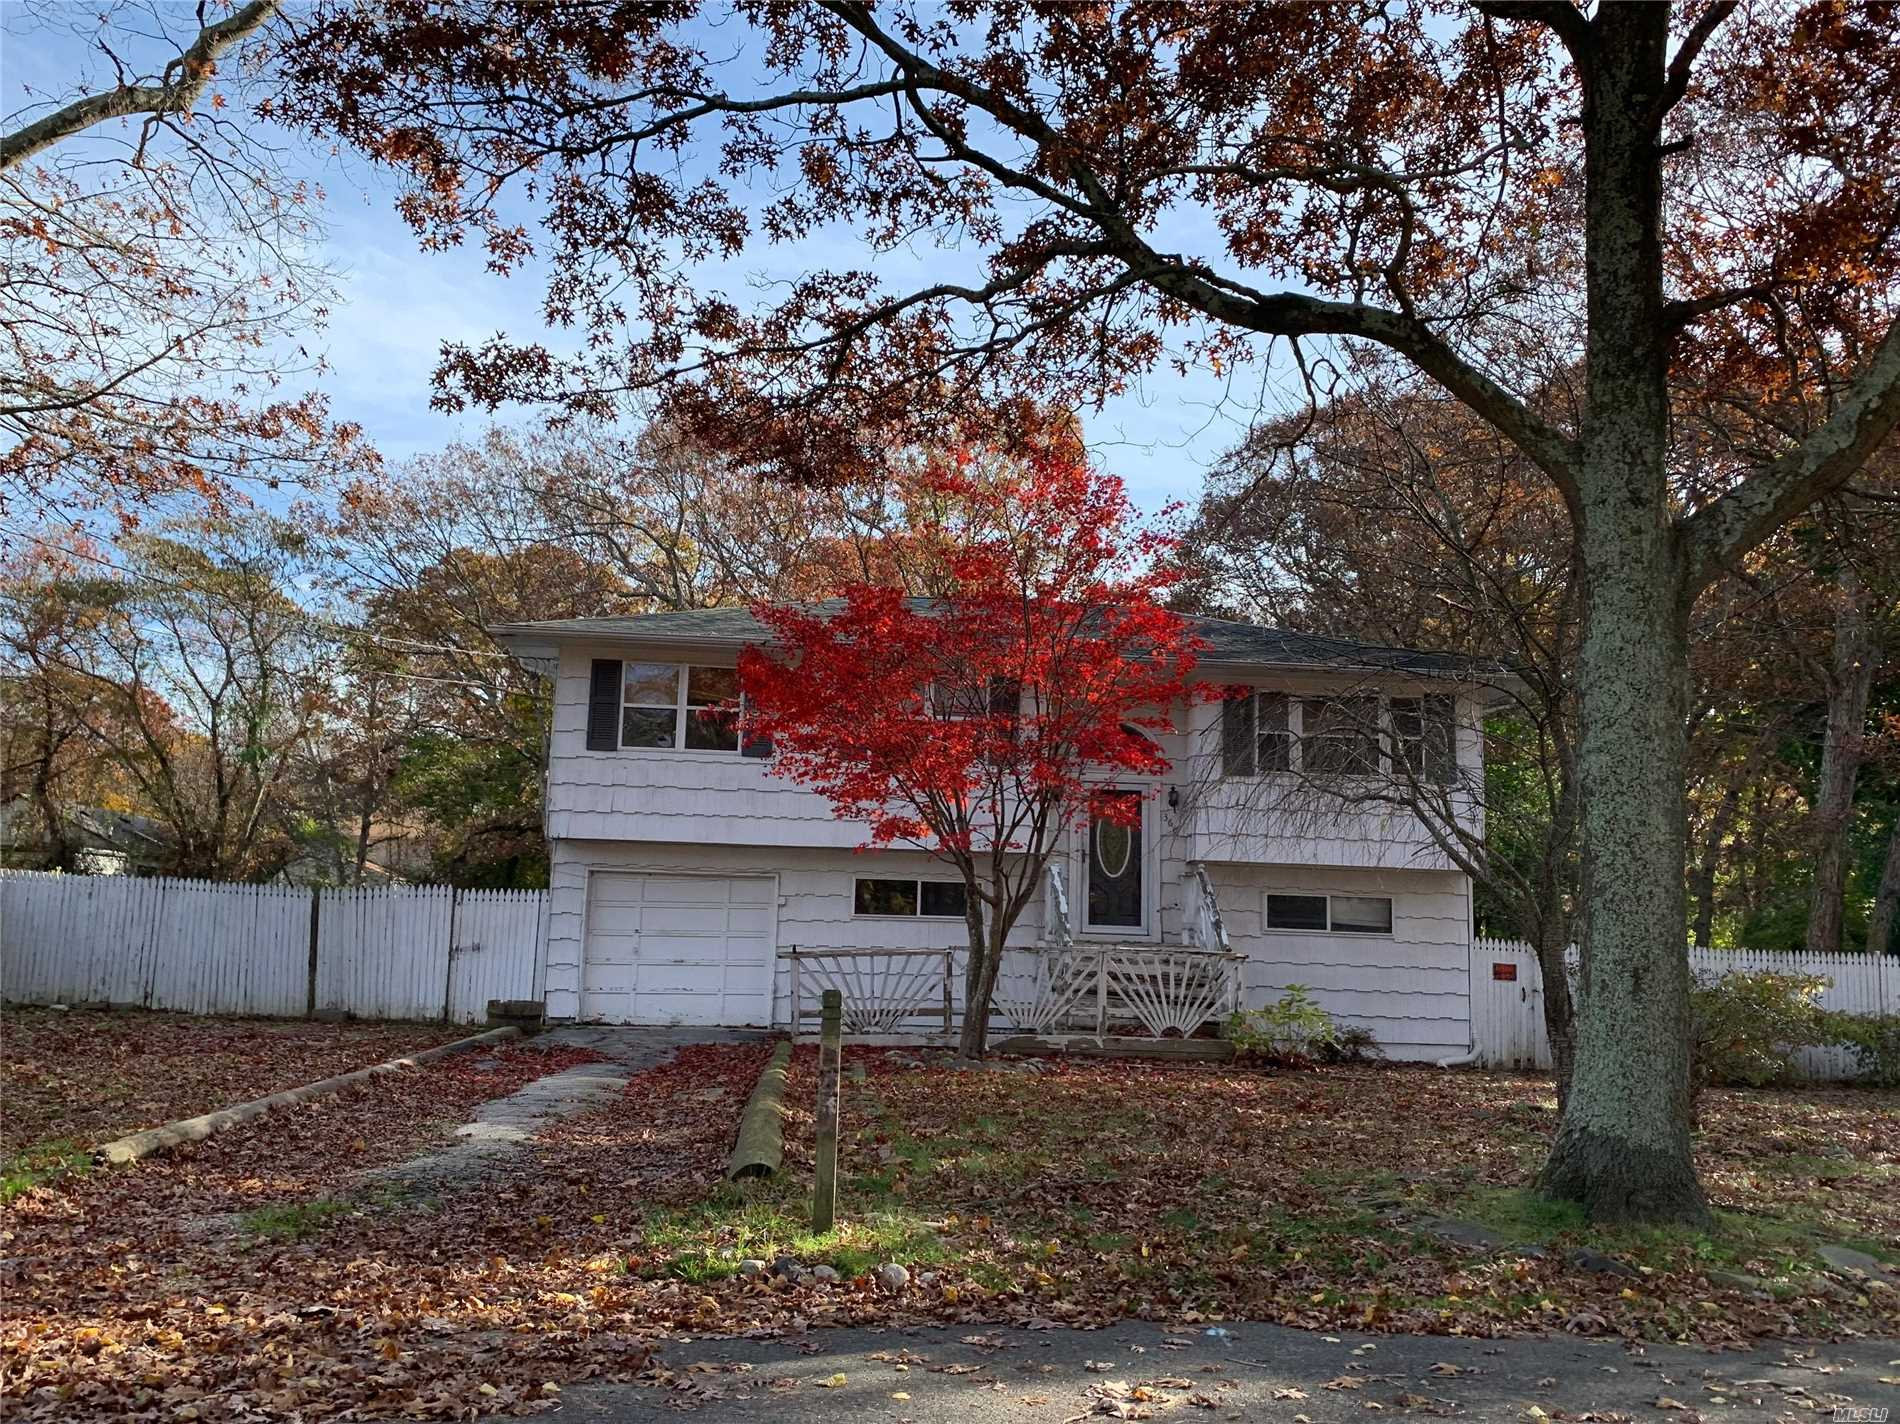 Calling All Investors. Hi-Ranch In North Shirley/Yaphank Area. 4 Bedrooms, 2 Baths, Possible Mother & Daughter With Proper Permits. Nice Size Lot, Great Fixer Upper, Fantastic Opportunity.